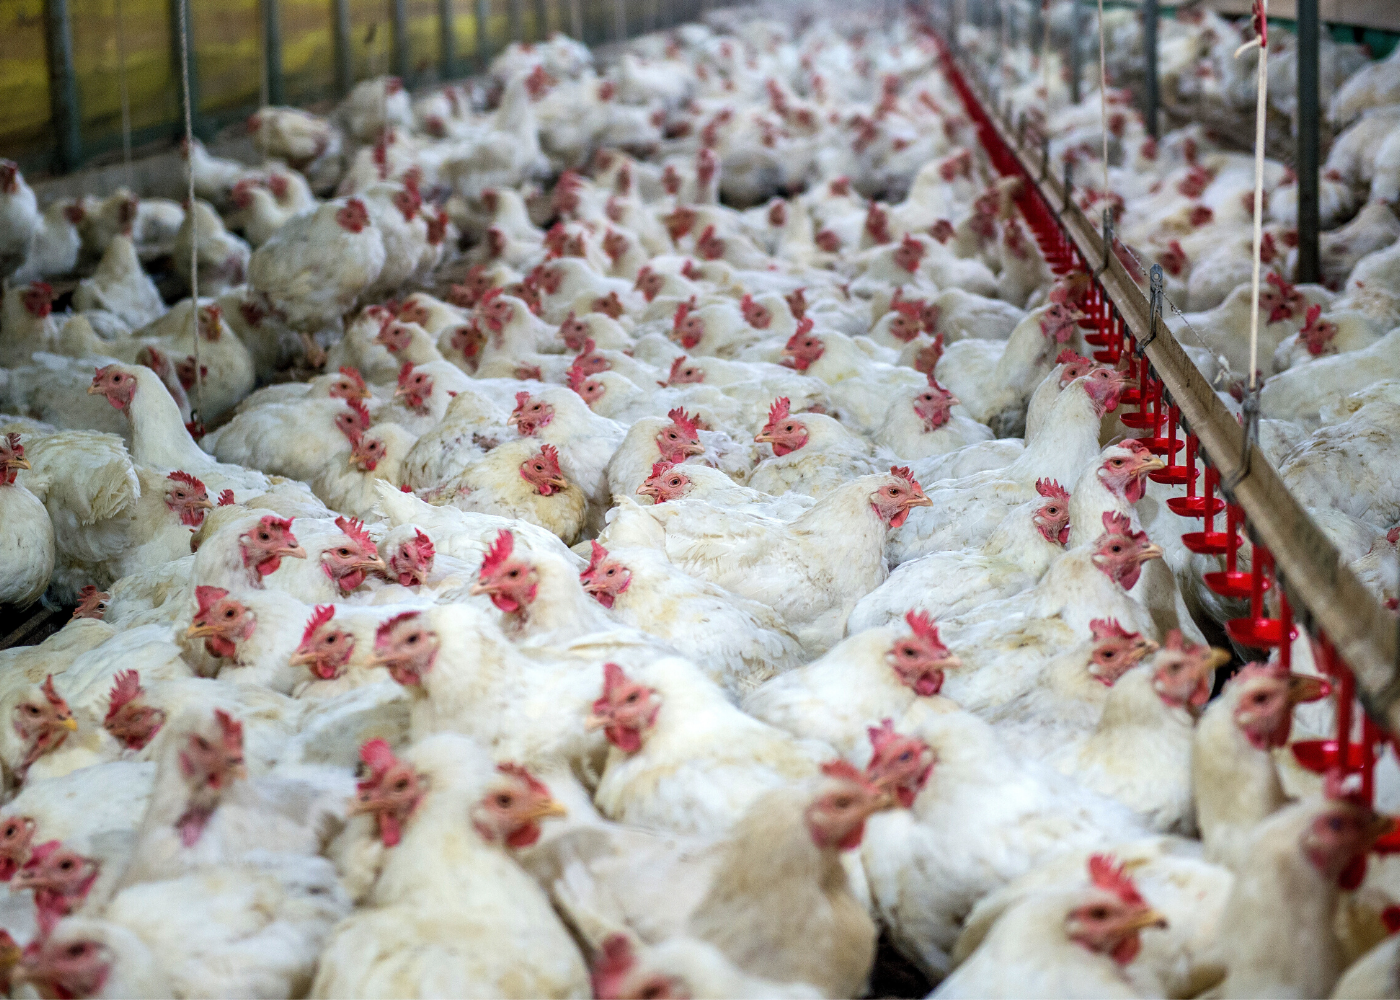 crammed chickens in factory farms